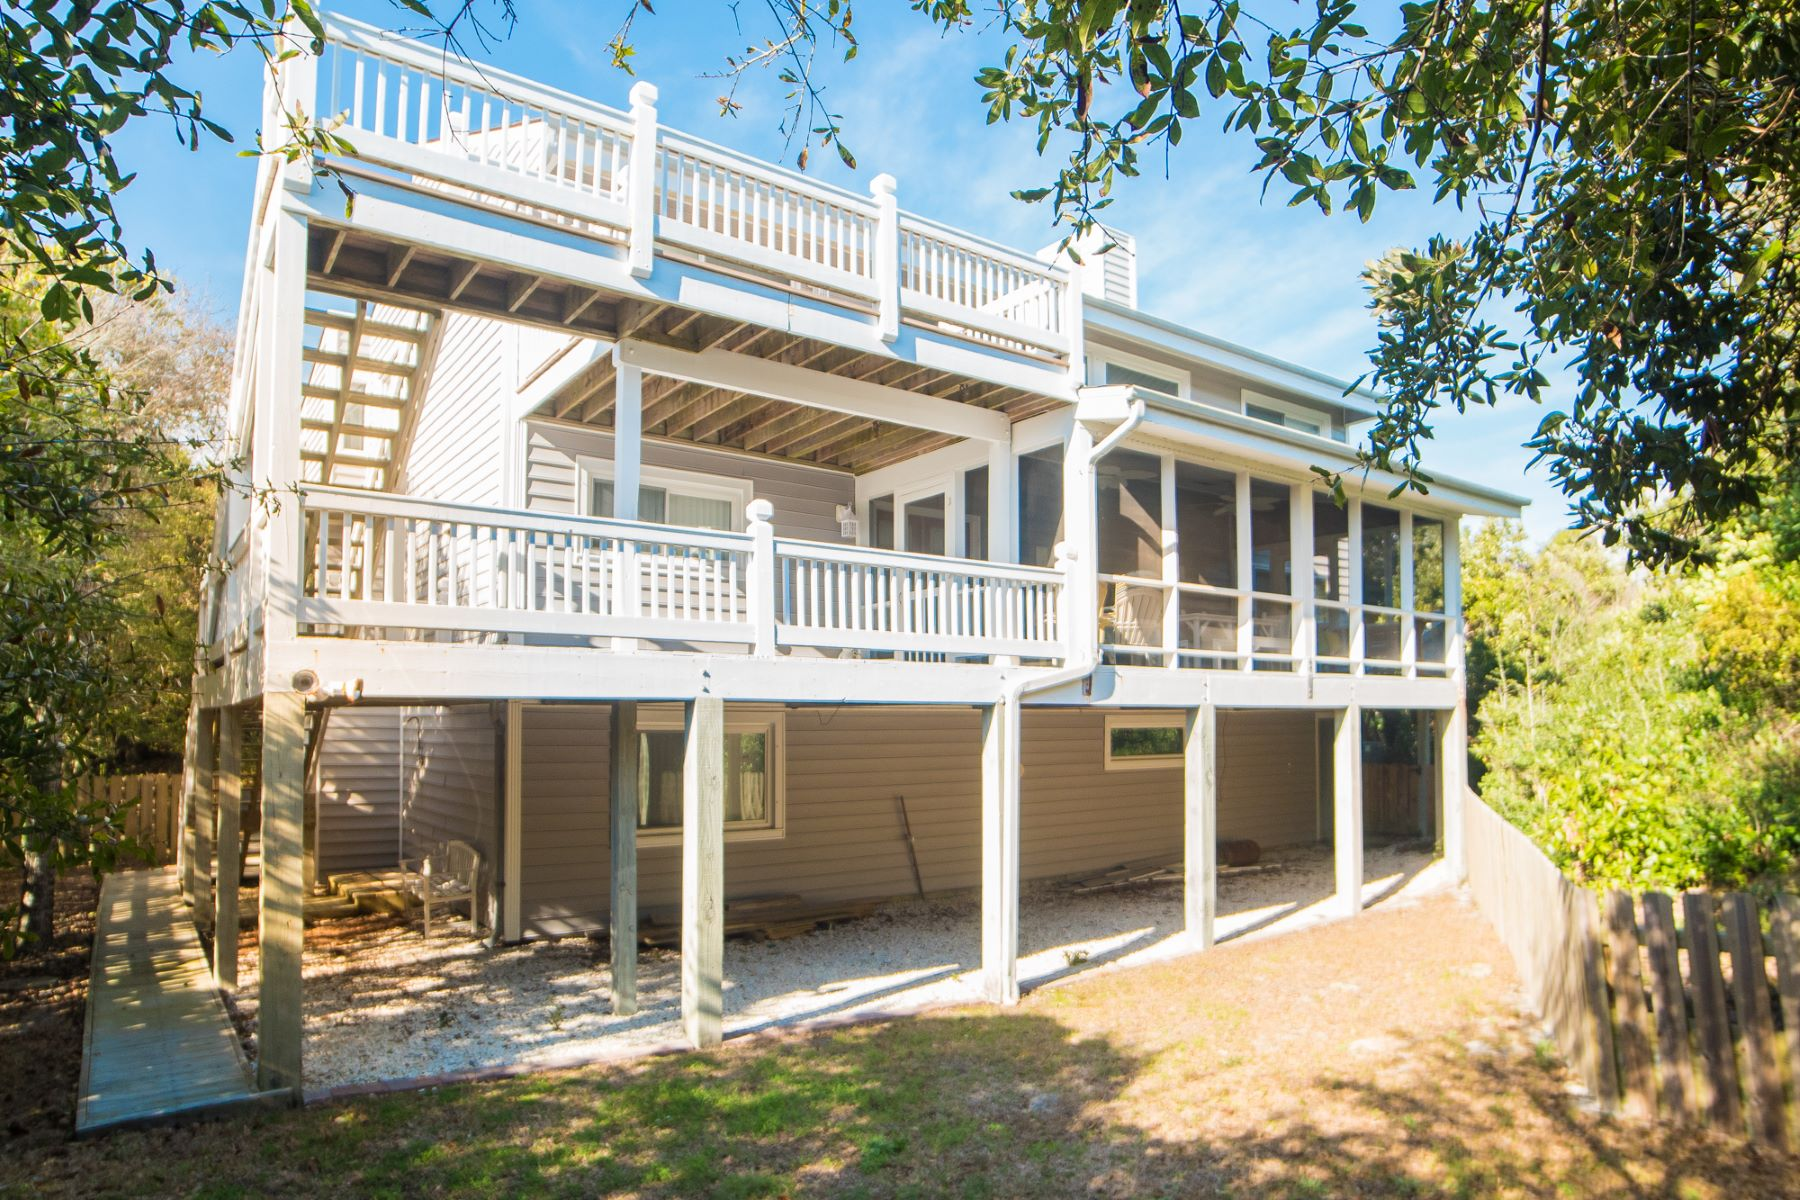 Moradia para Venda às Spacious Island Home with Ocean Views and Privacy 126 Channel Bend Surf City, Carolina Do Norte, 28445 Estados Unidos